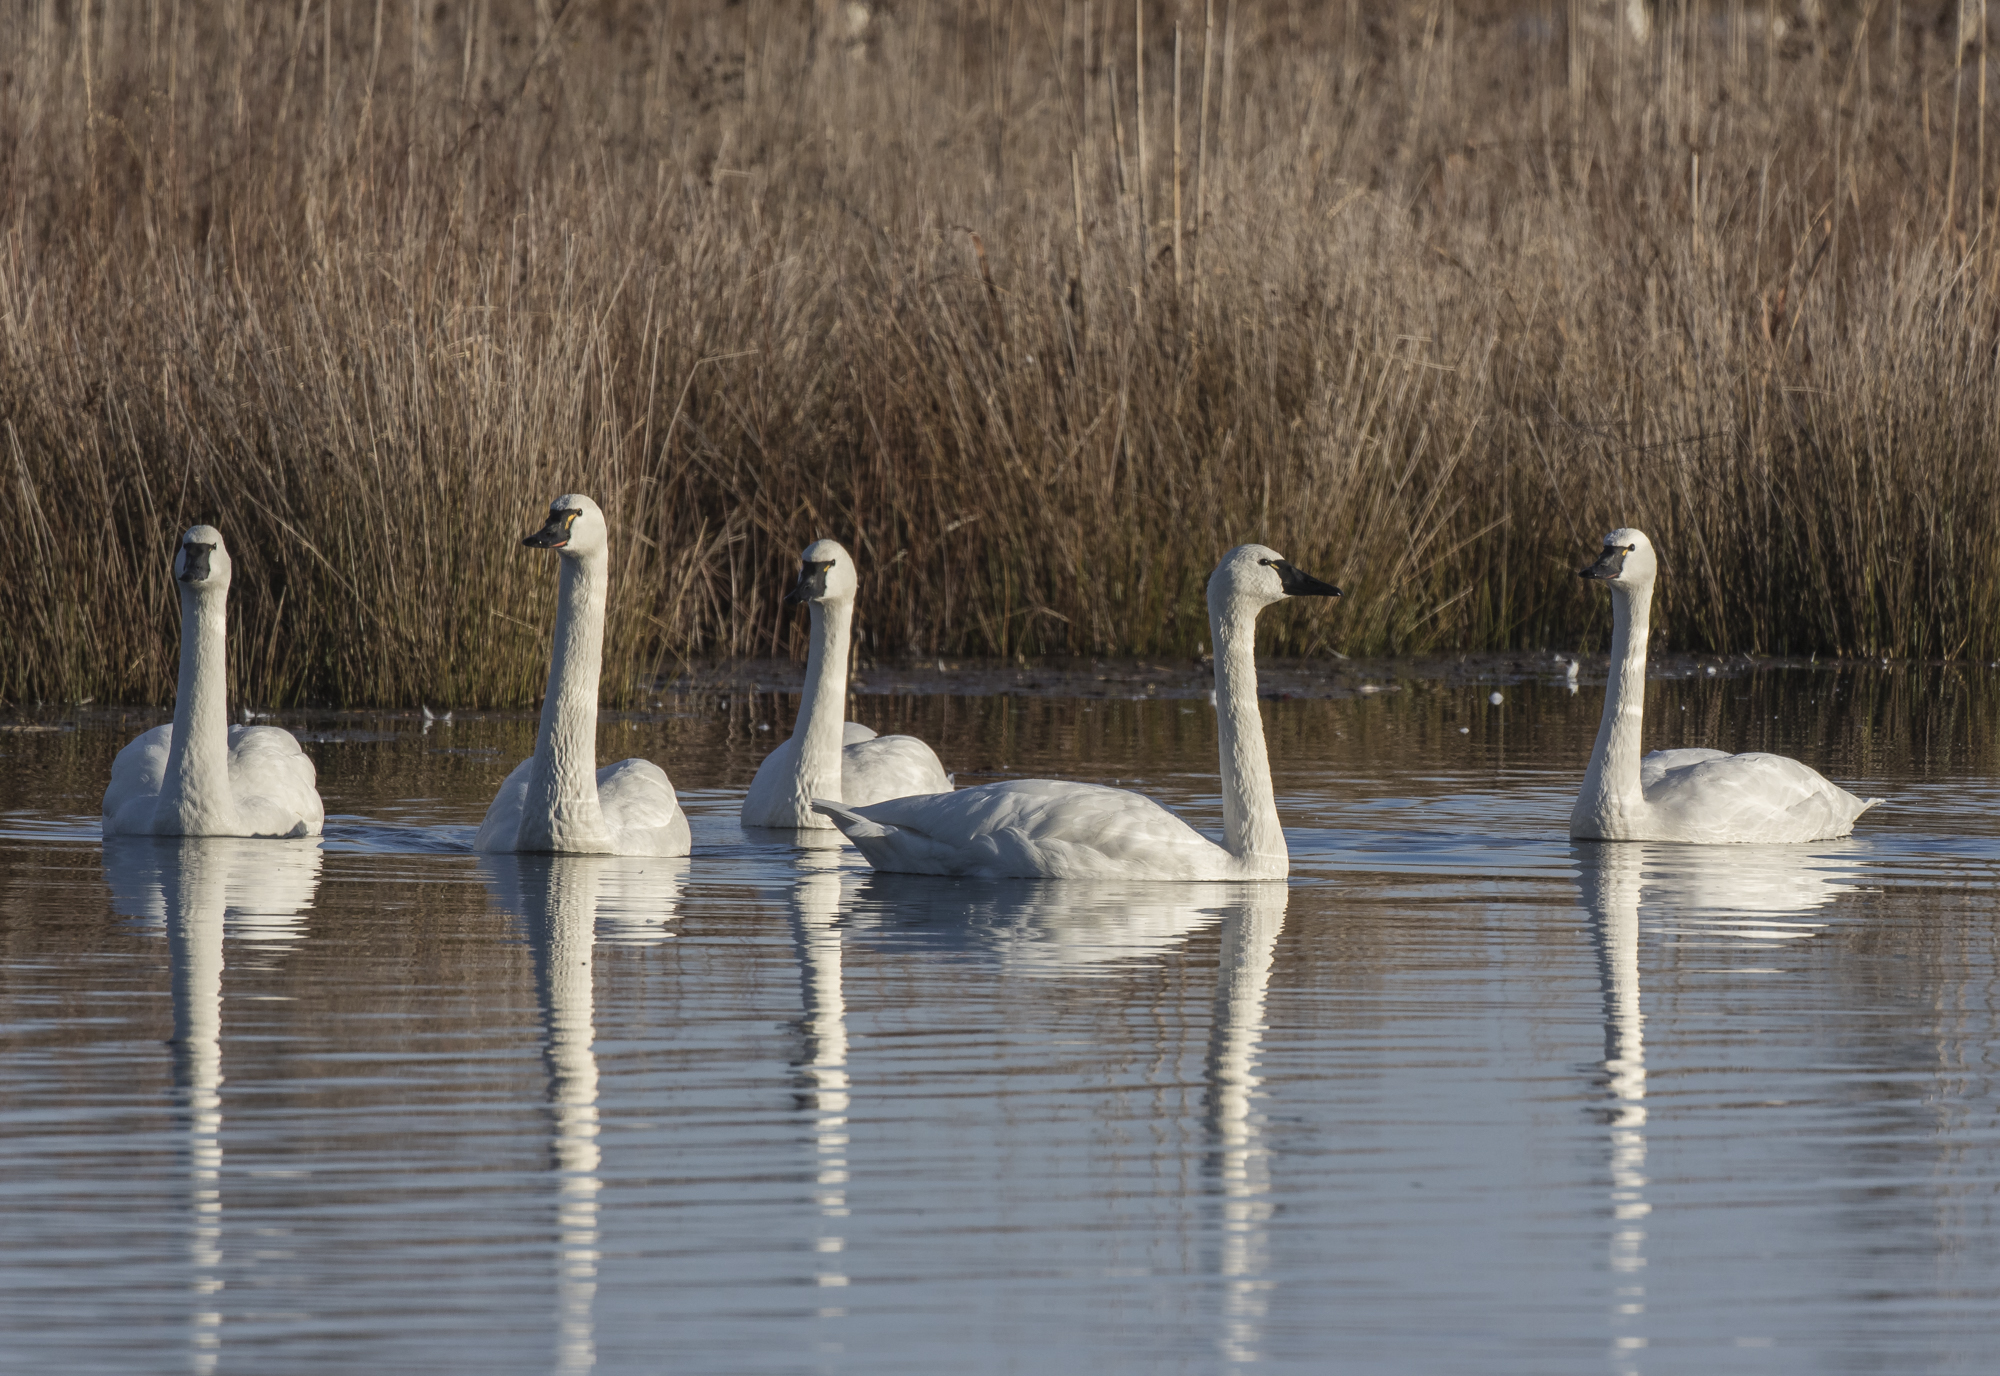 Tundra swan reflections